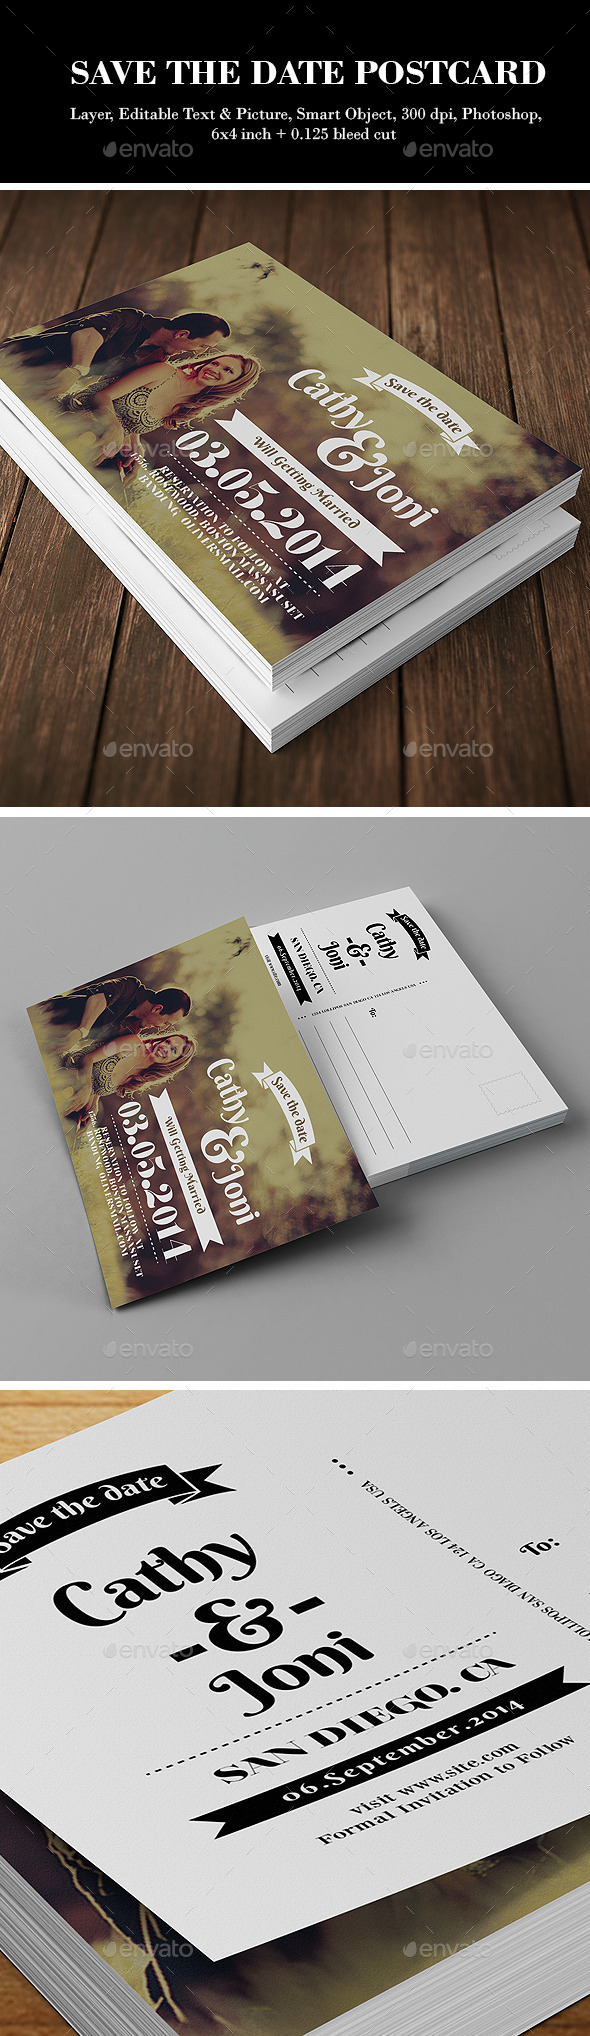 GraphicRiver Save the Date Post card 9189538